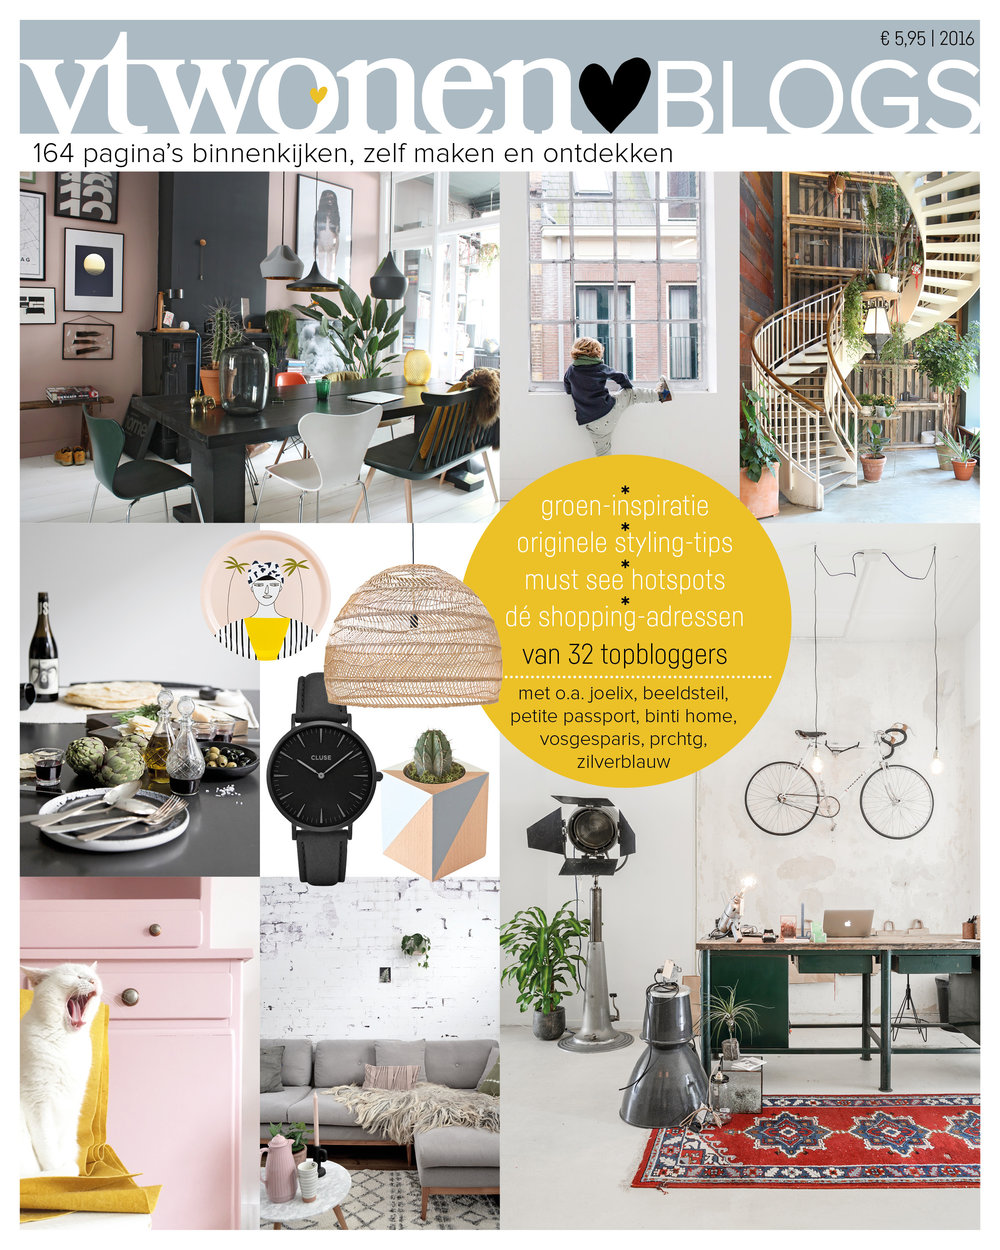 vtwonen THE NICE STUFF COLLECTOR INTERIOR BLOG INTERIEUR THEO-BERT POT